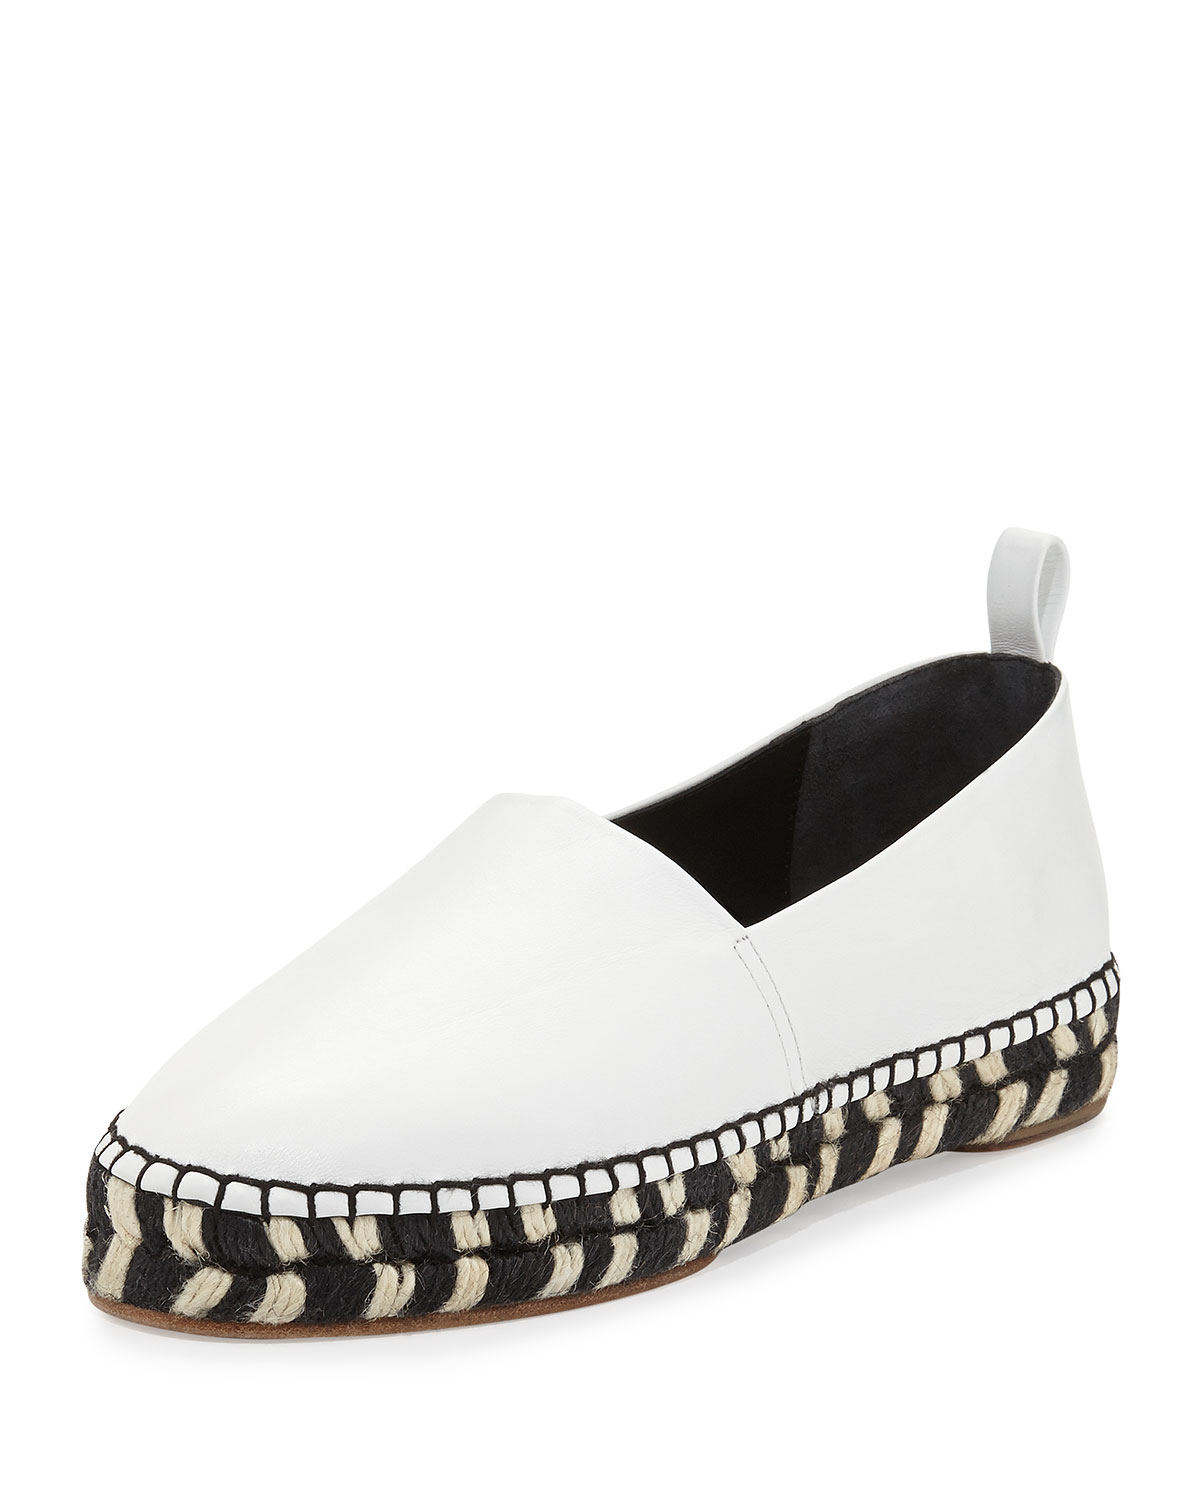 Proenza Schouler Leather Espadrille Flats discount with credit card cheap real finishline KeO7U